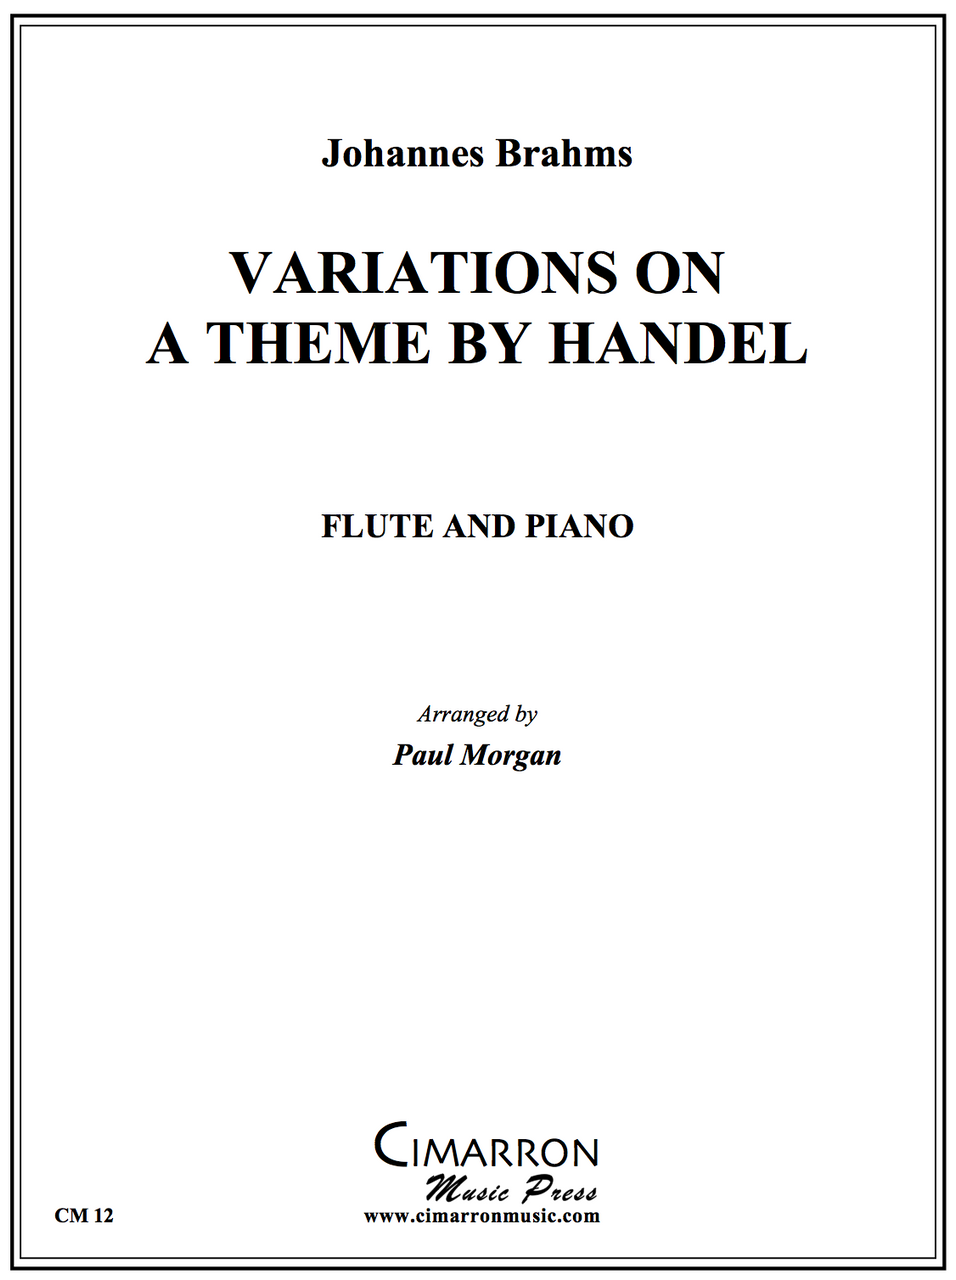 Brahms -Variations on a Theme by Handel - Flute and Piano